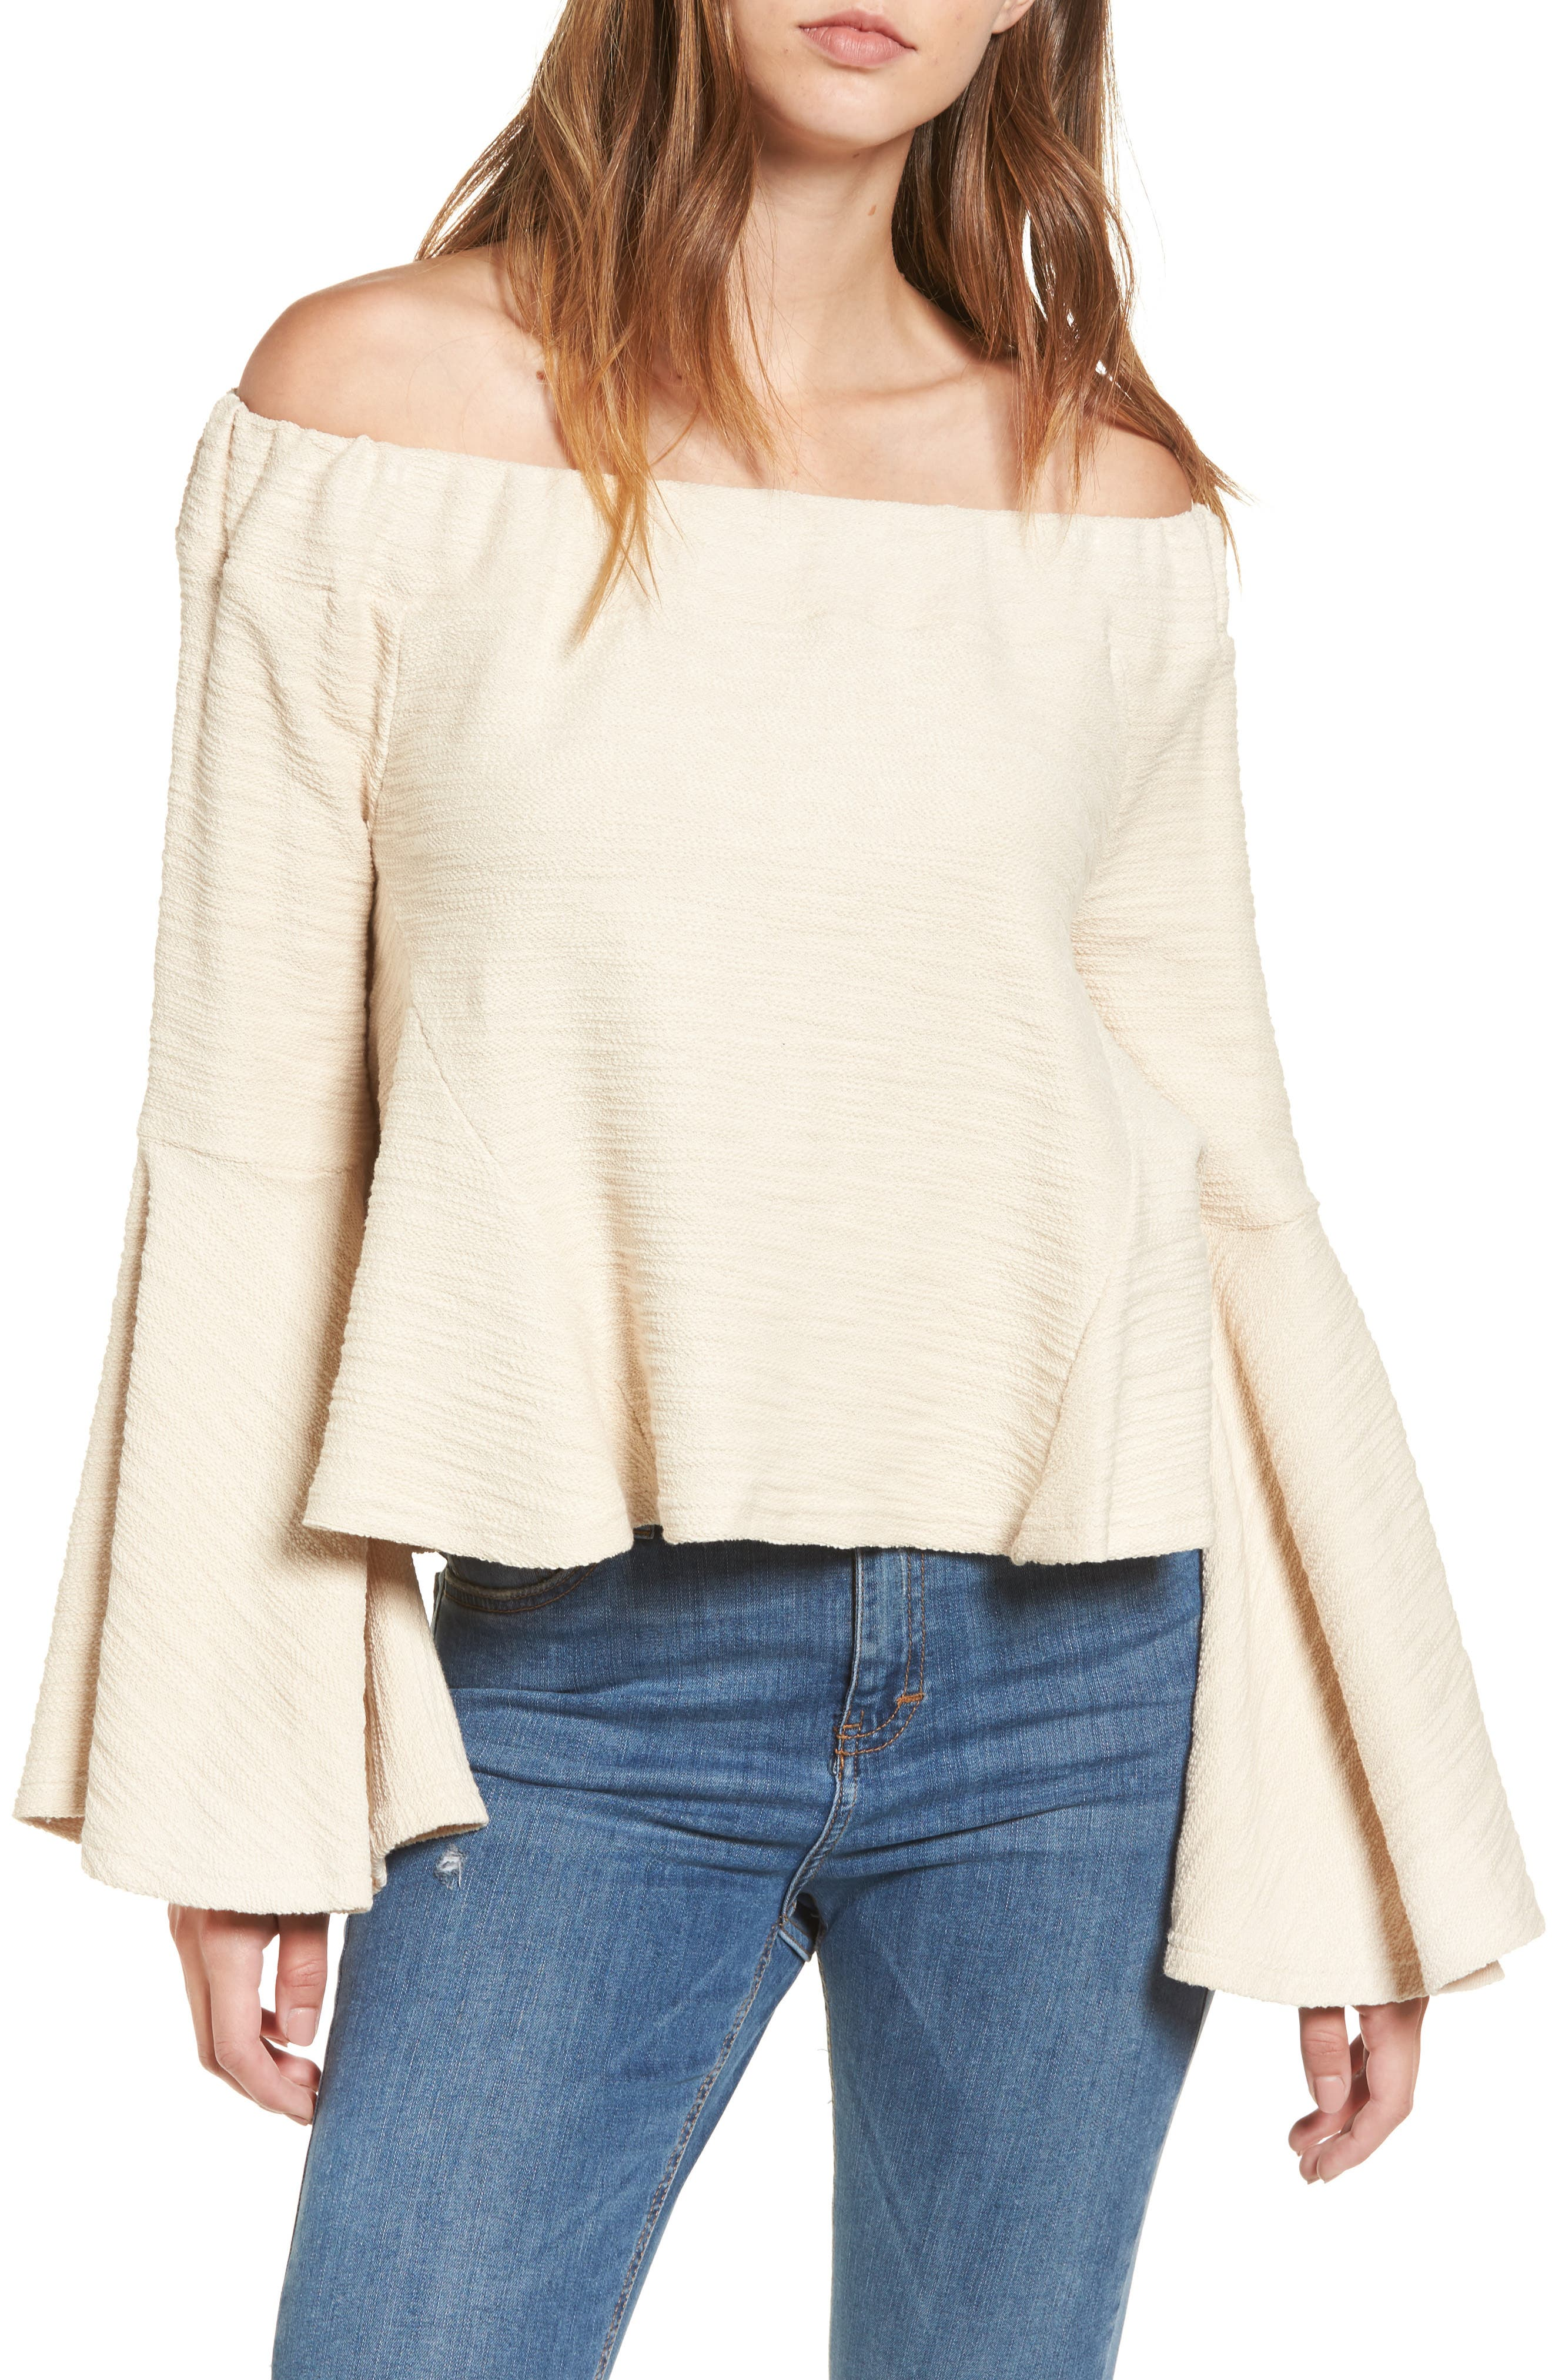 Main Image - MOON RIVER Off the Shoulder Bell Sleeve Top